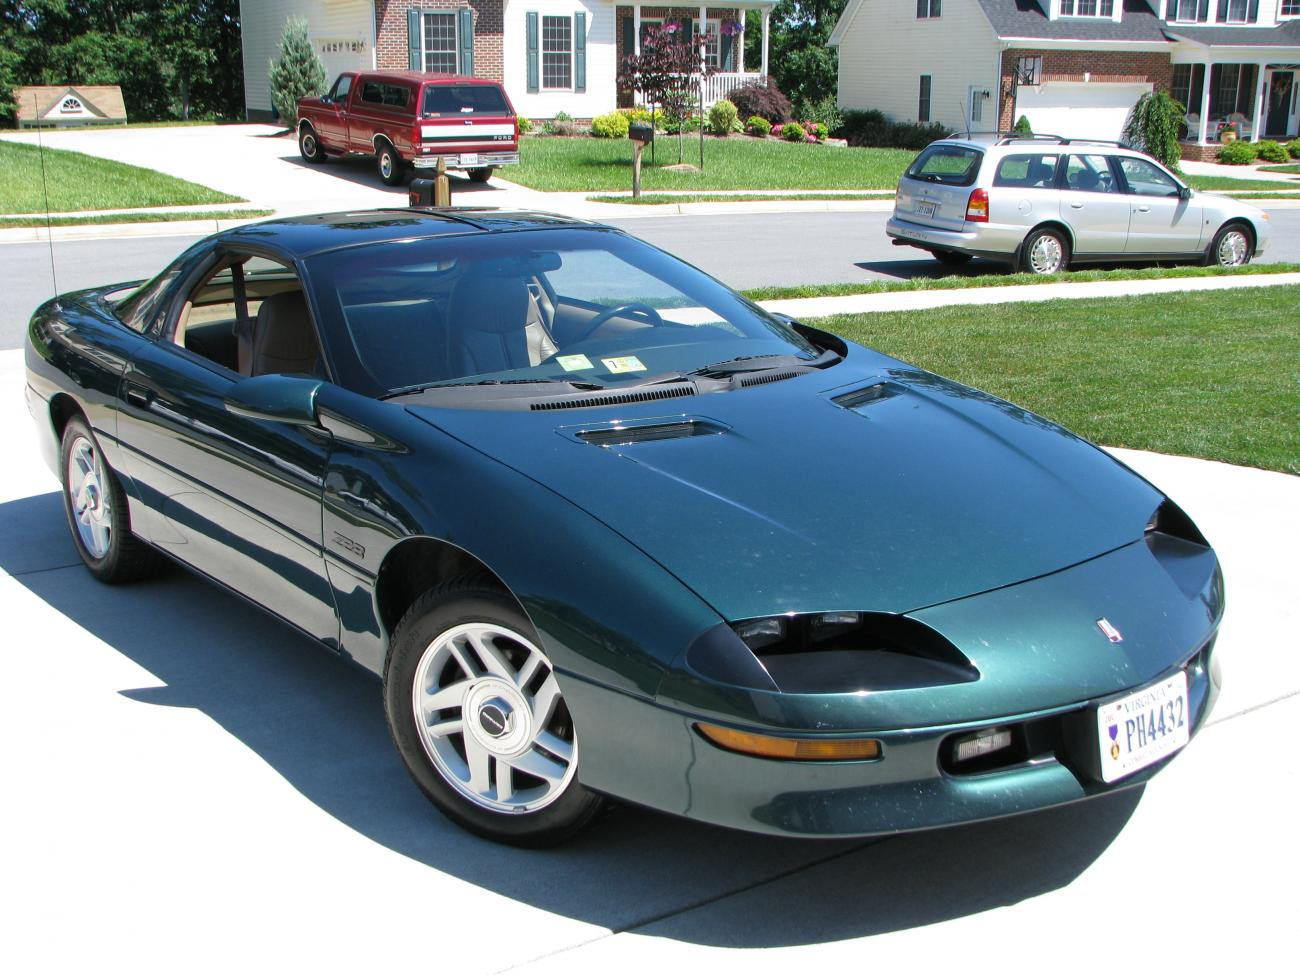 1995 camaro z28 for sale 6500 camaro5 chevy camaro forum camaro zl1 ss and v6 forums. Black Bedroom Furniture Sets. Home Design Ideas